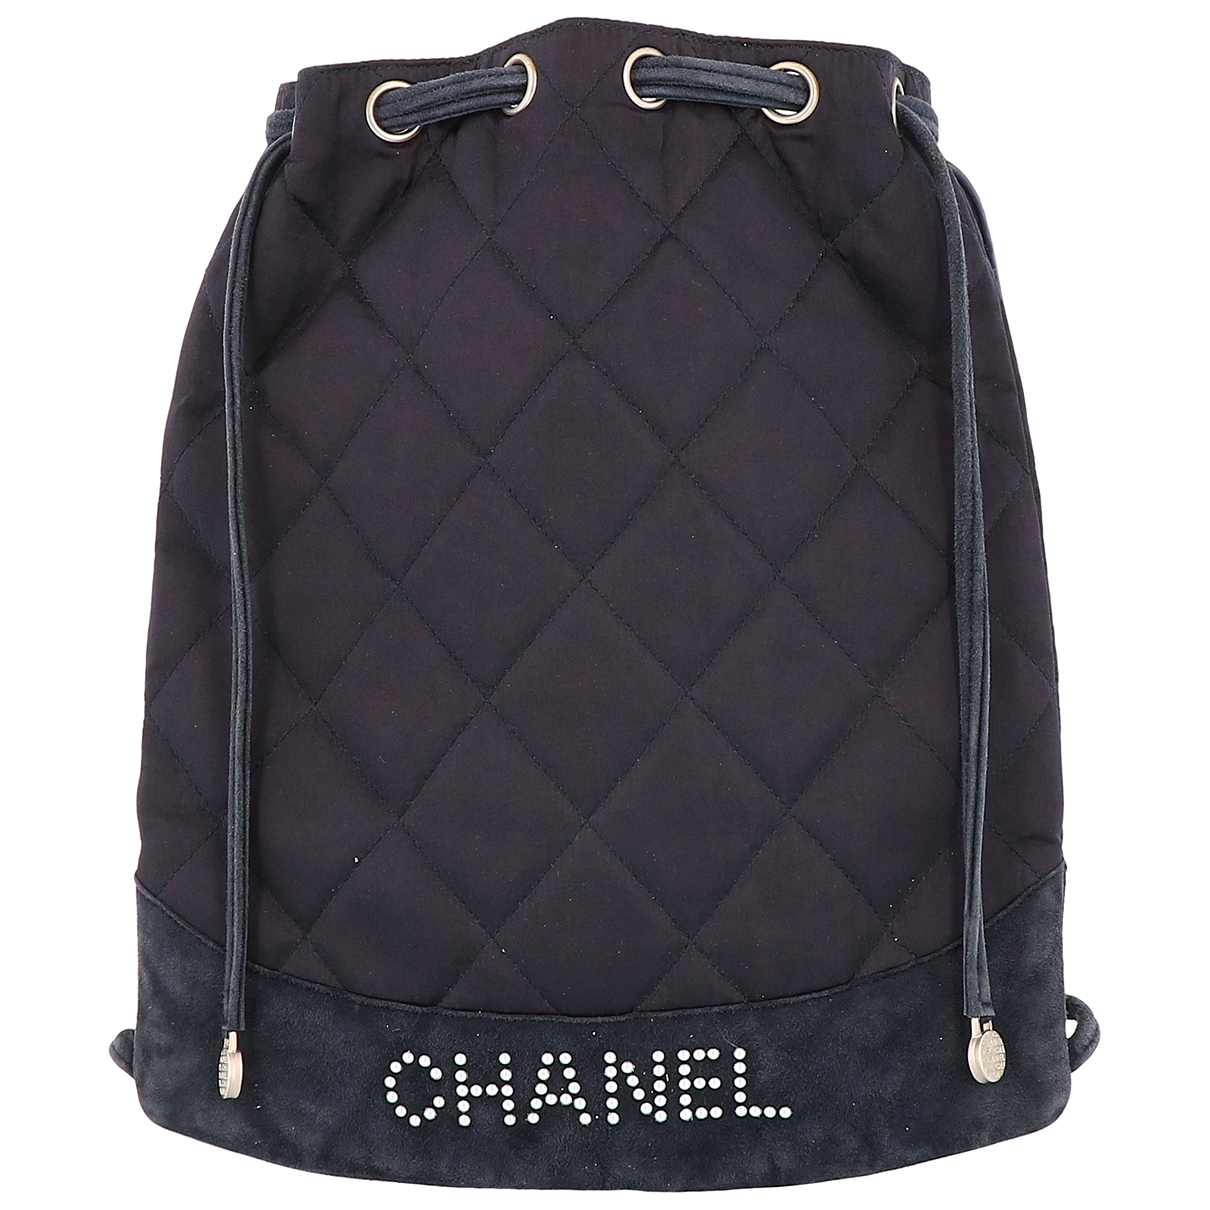 Chanel N Black Cloth backpack for Women N